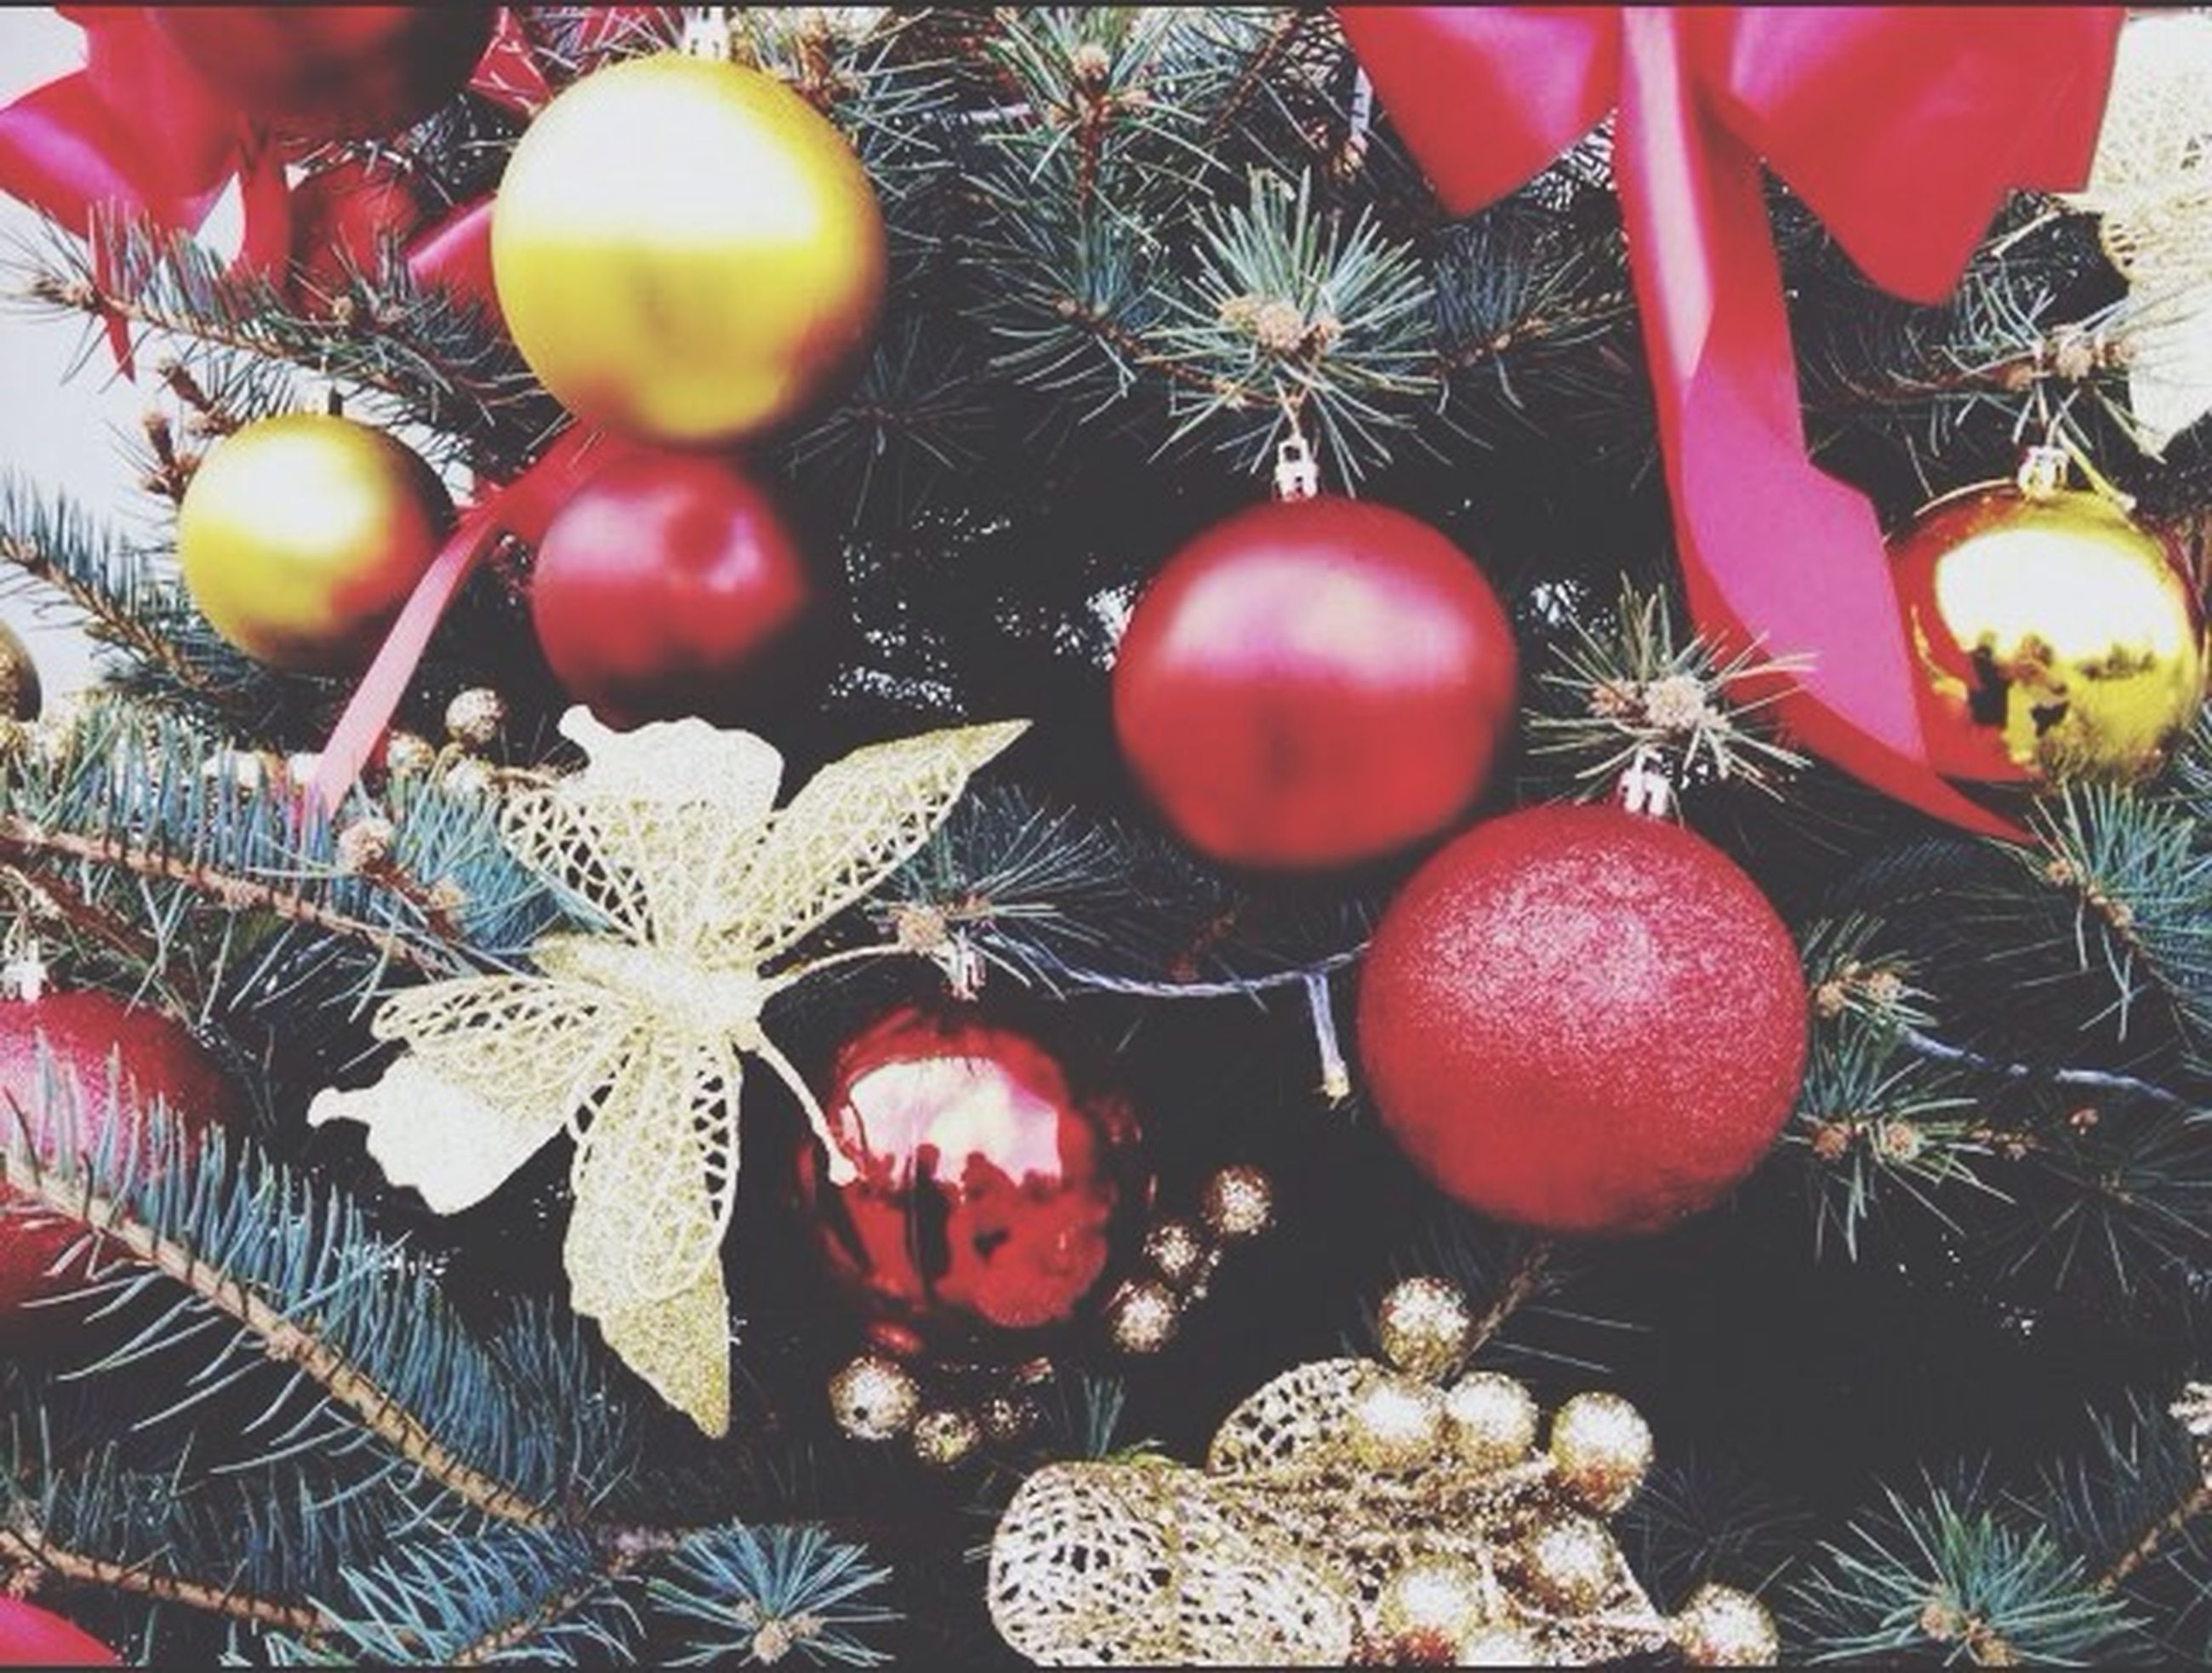 hanging, christmas, decoration, celebration, christmas decoration, christmas ornament, tradition, christmas tree, red, low angle view, cultures, fruit, close-up, traditional festival, christmas lights, indoors, decor, holiday - event, lantern, celebration event